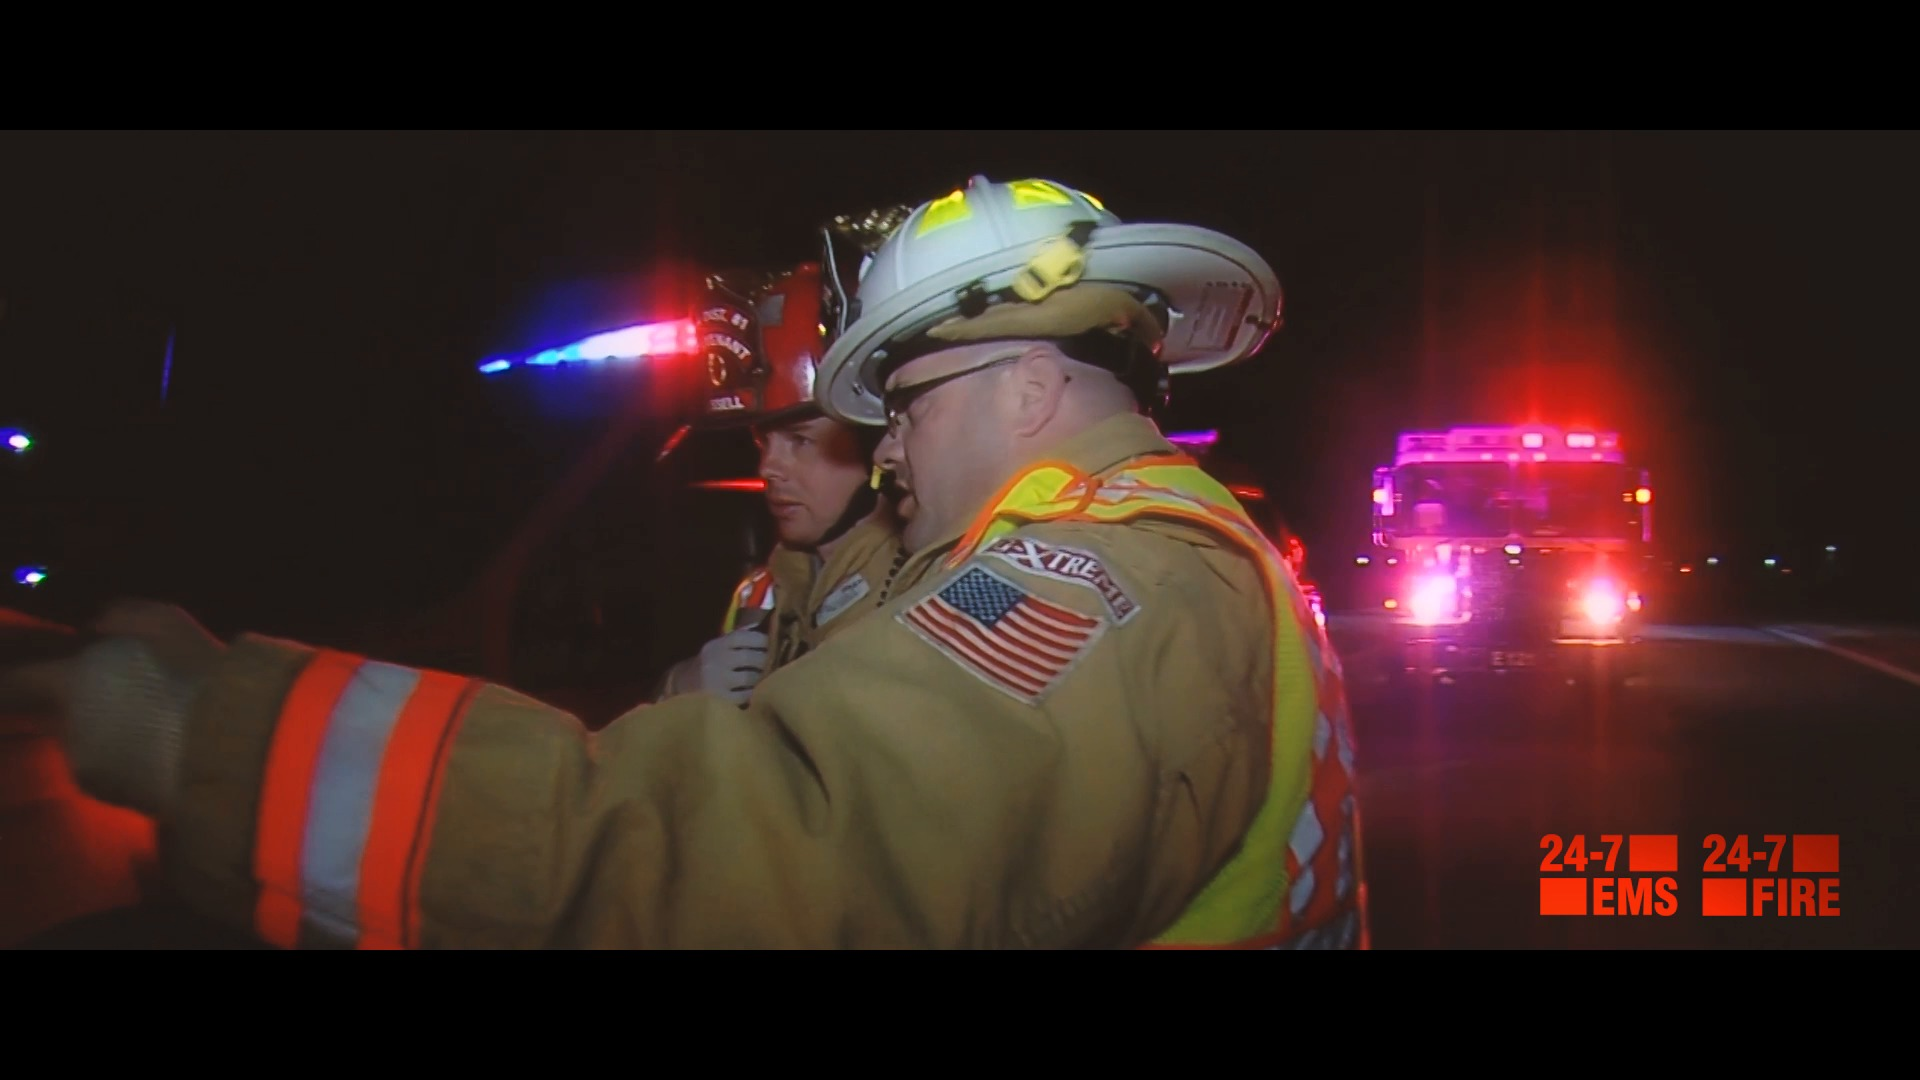 24 7 ems and 24 7 fire continuing education ems and firefighter 24 7 ems and 24 7 fire continuing education ems and firefighter development online courses fandeluxe Gallery